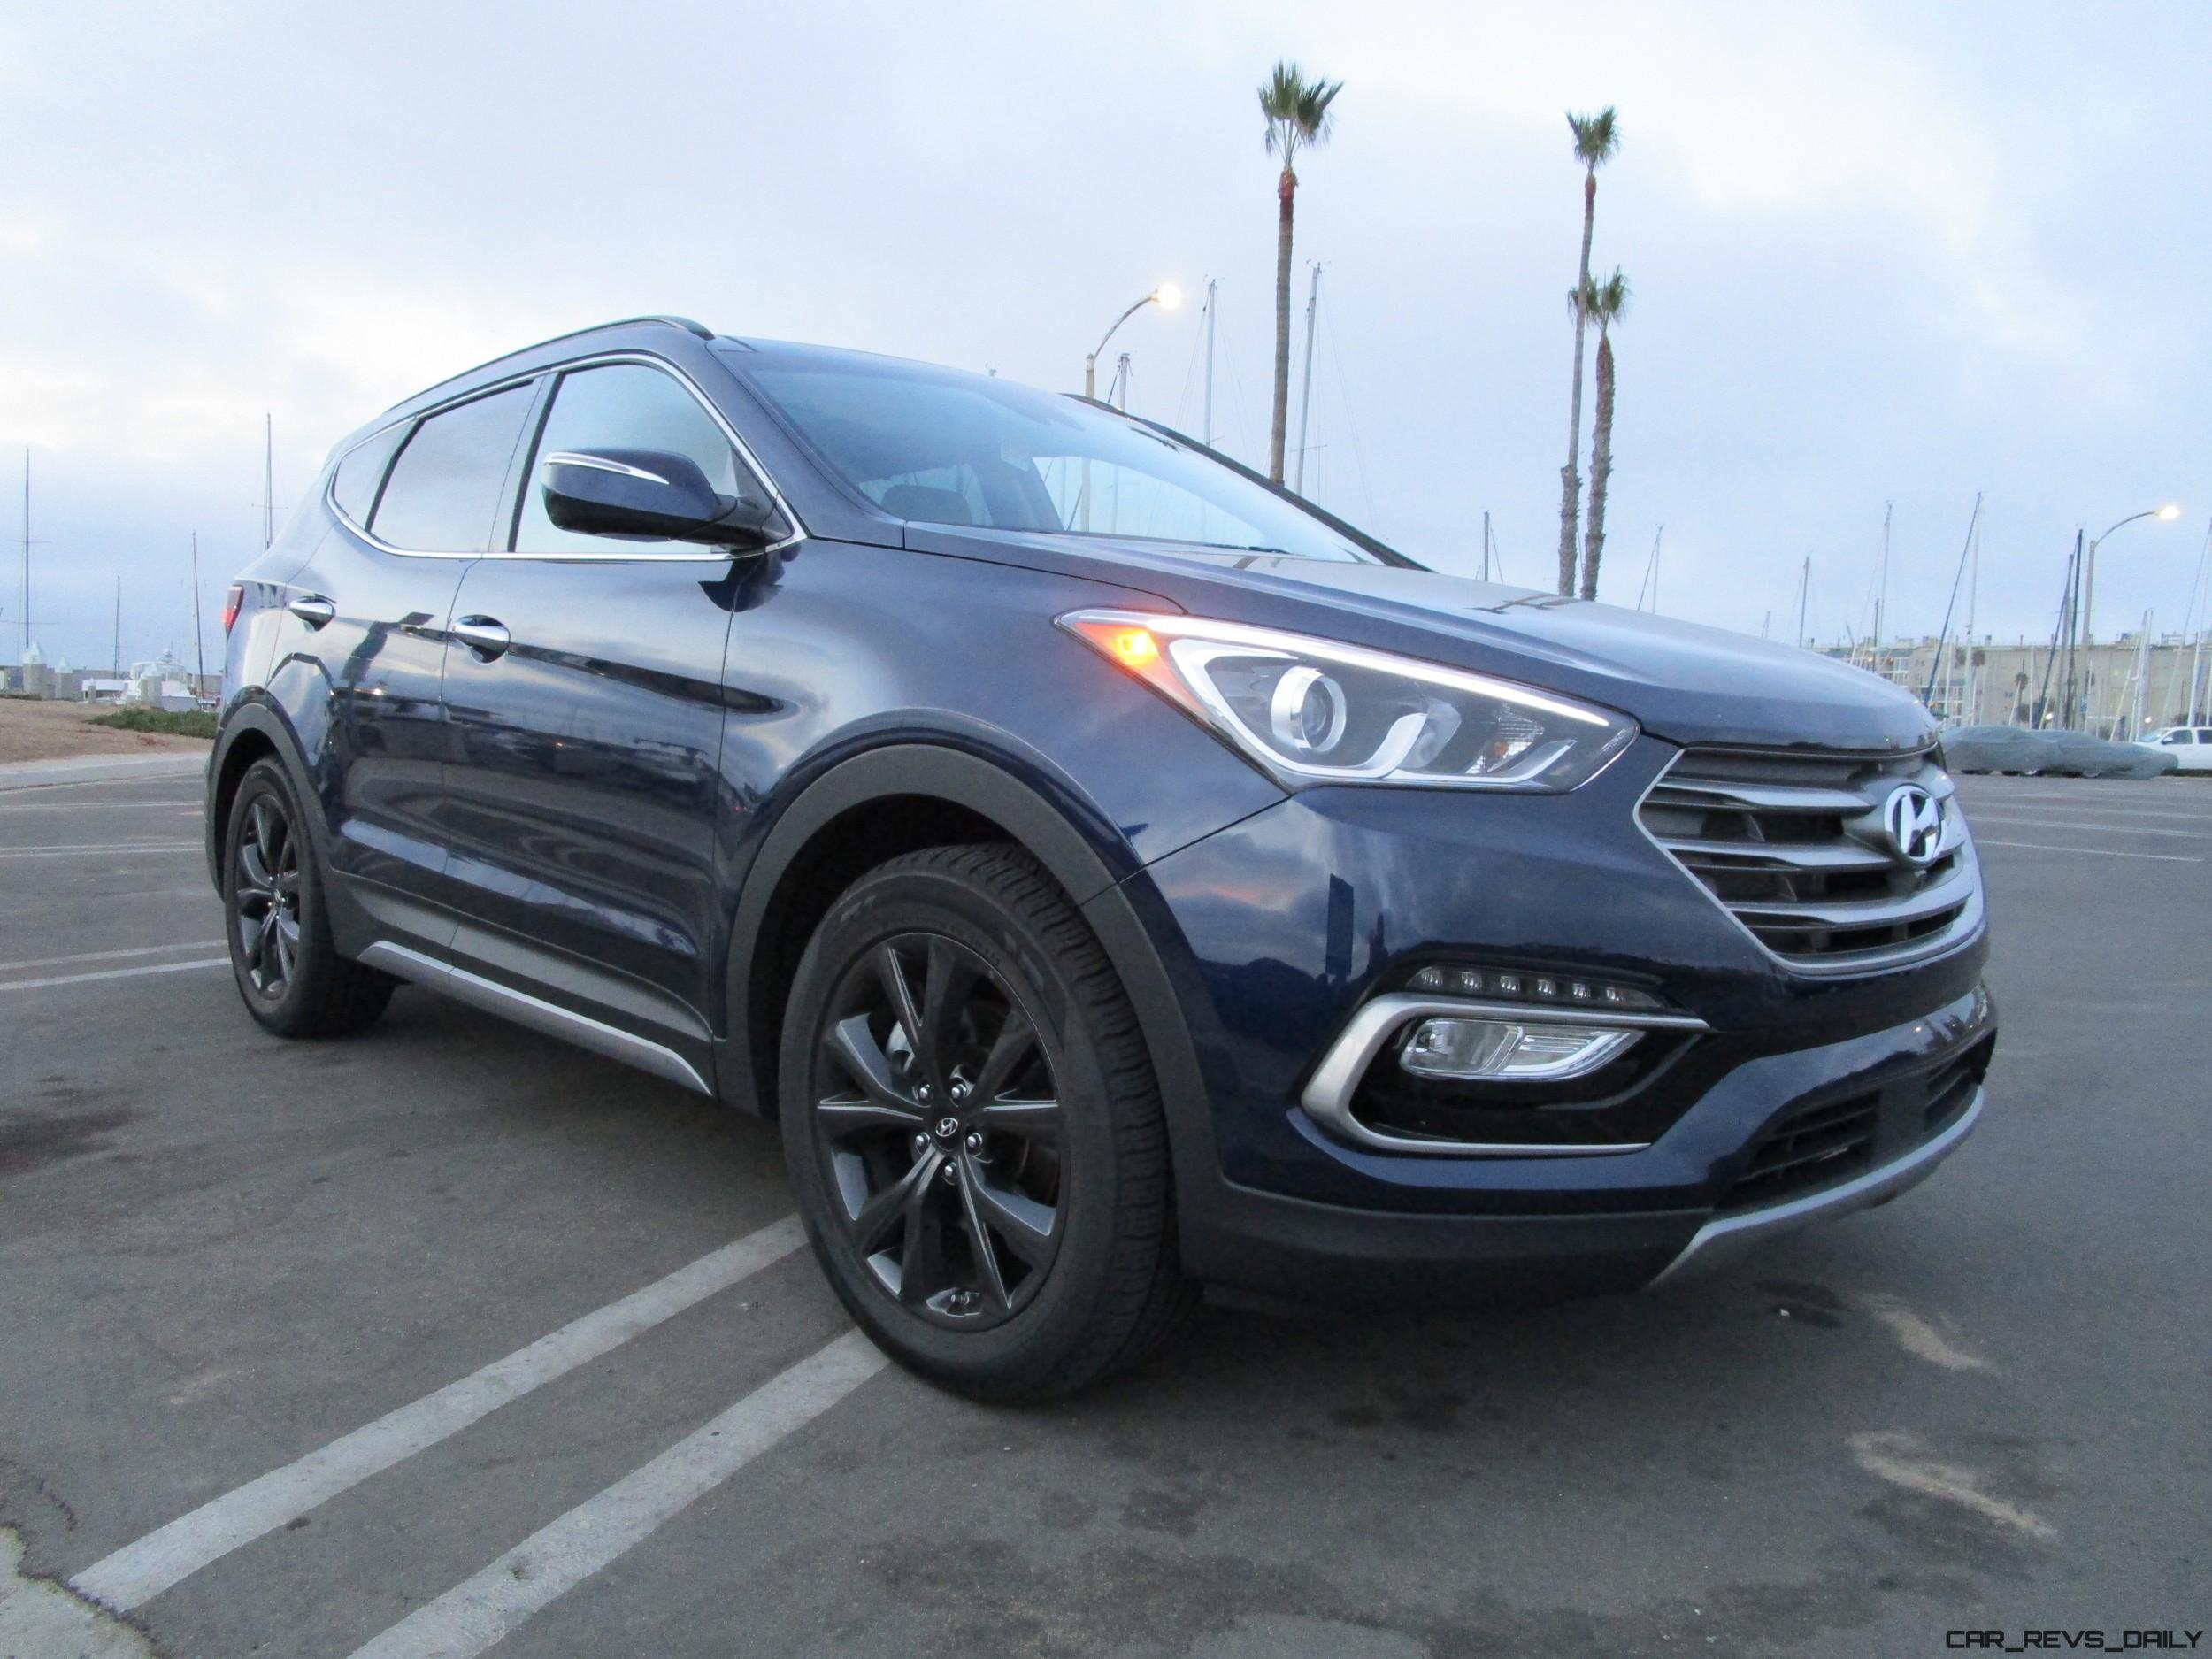 2017 hyundai santa fe sport 2 0t awd road test review by ben lewis. Black Bedroom Furniture Sets. Home Design Ideas